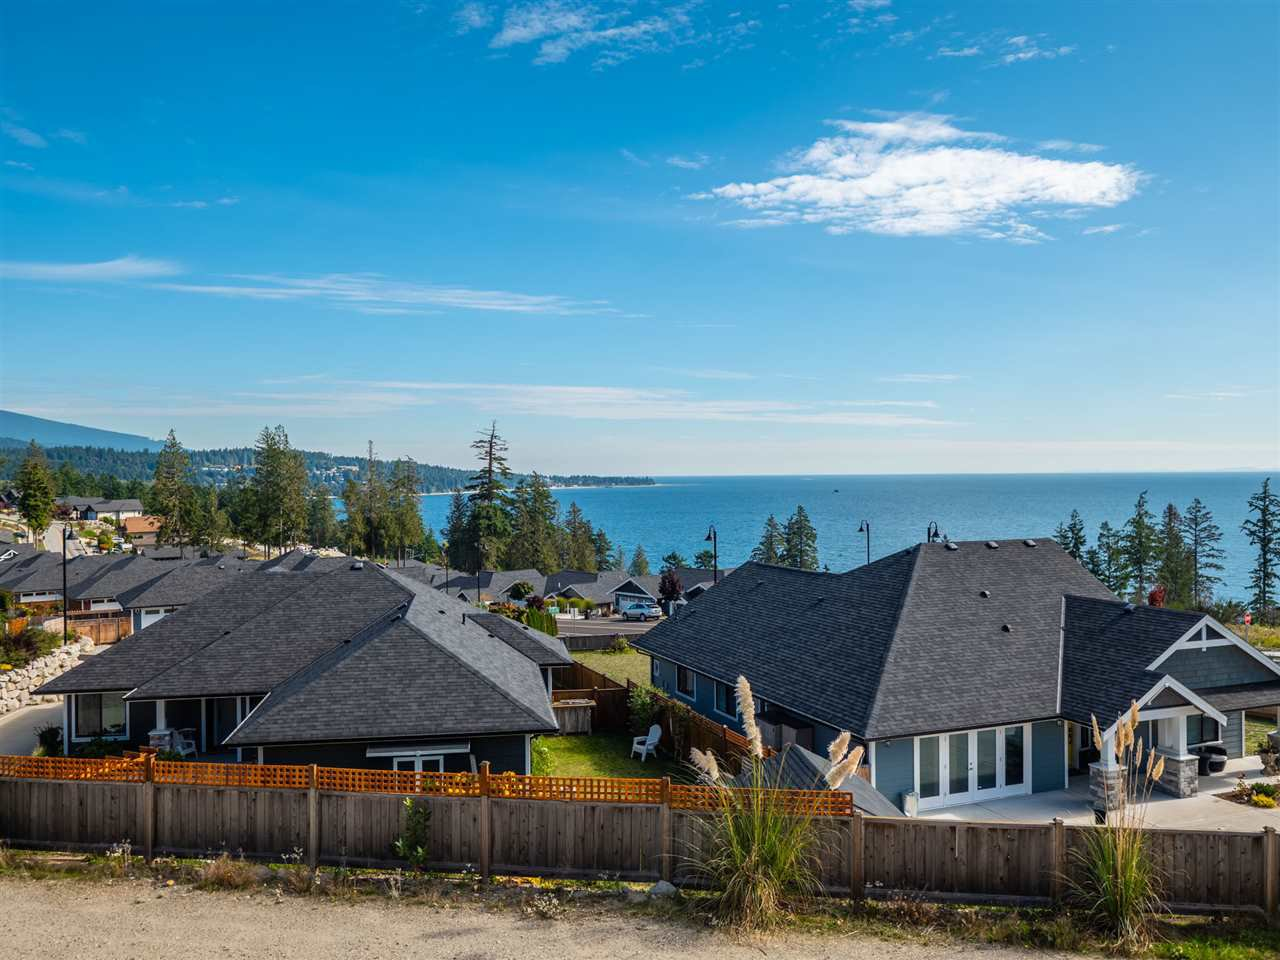 """Photo 3: Photos: 5634 KINGBIRD Crescent in Sechelt: Sechelt District House for sale in """"SilverStone Heights Phase2"""" (Sunshine Coast)  : MLS®# R2466073"""